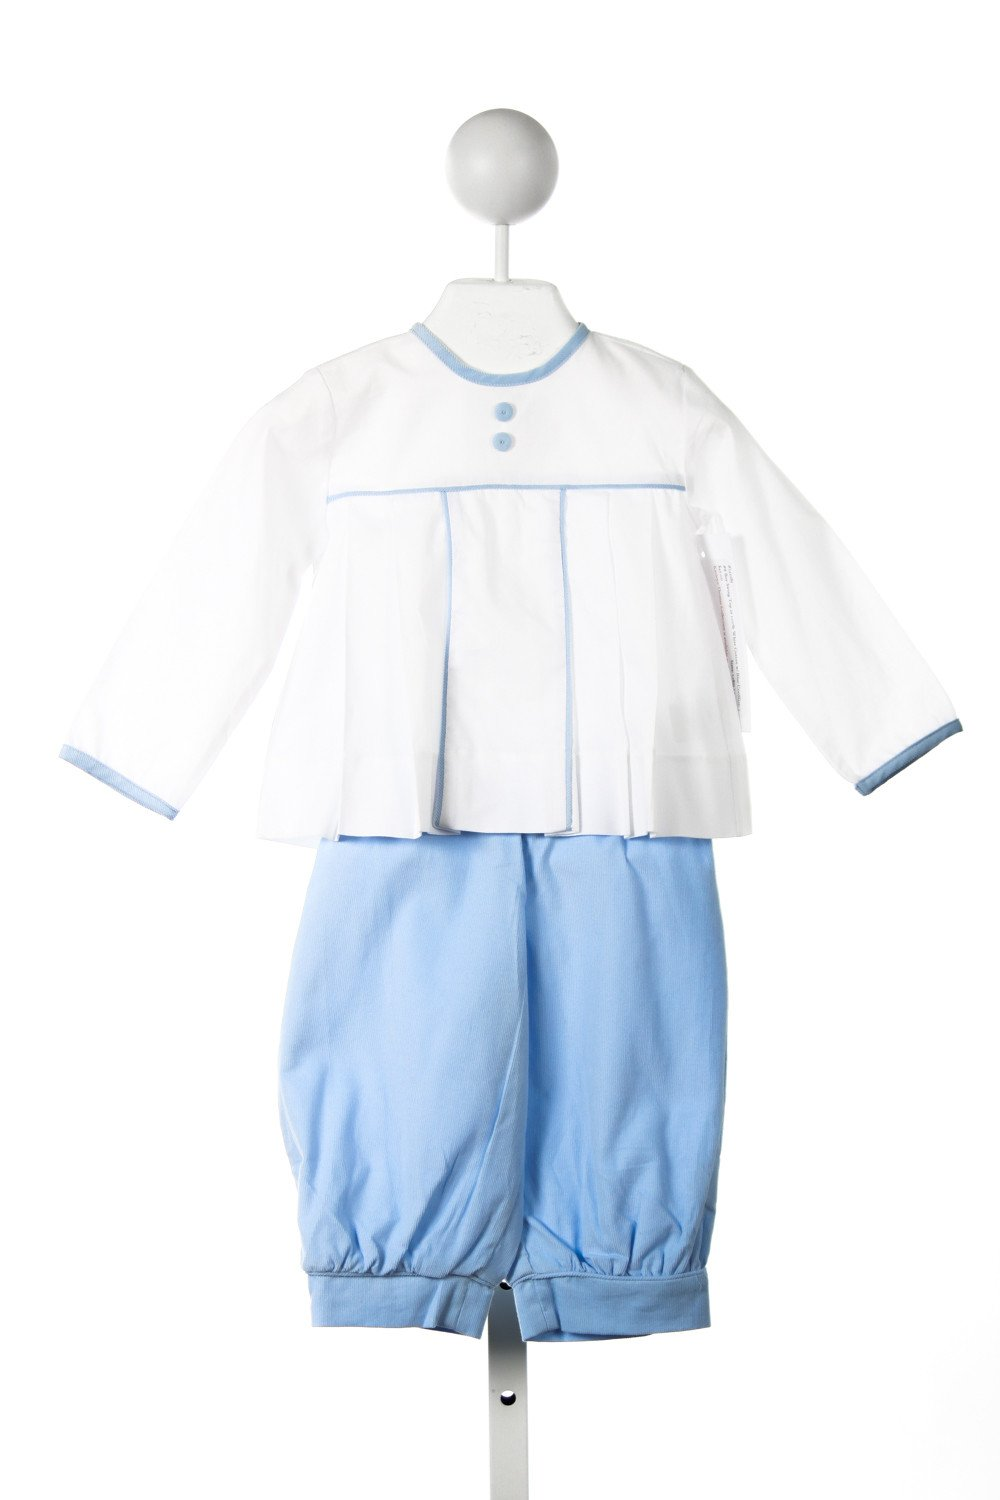 RED BEANS BOY SWING TOP IN WHITE WITH BLUE CORD TRIM AND BOY BUBBLE PANTS IN BLUE CORD